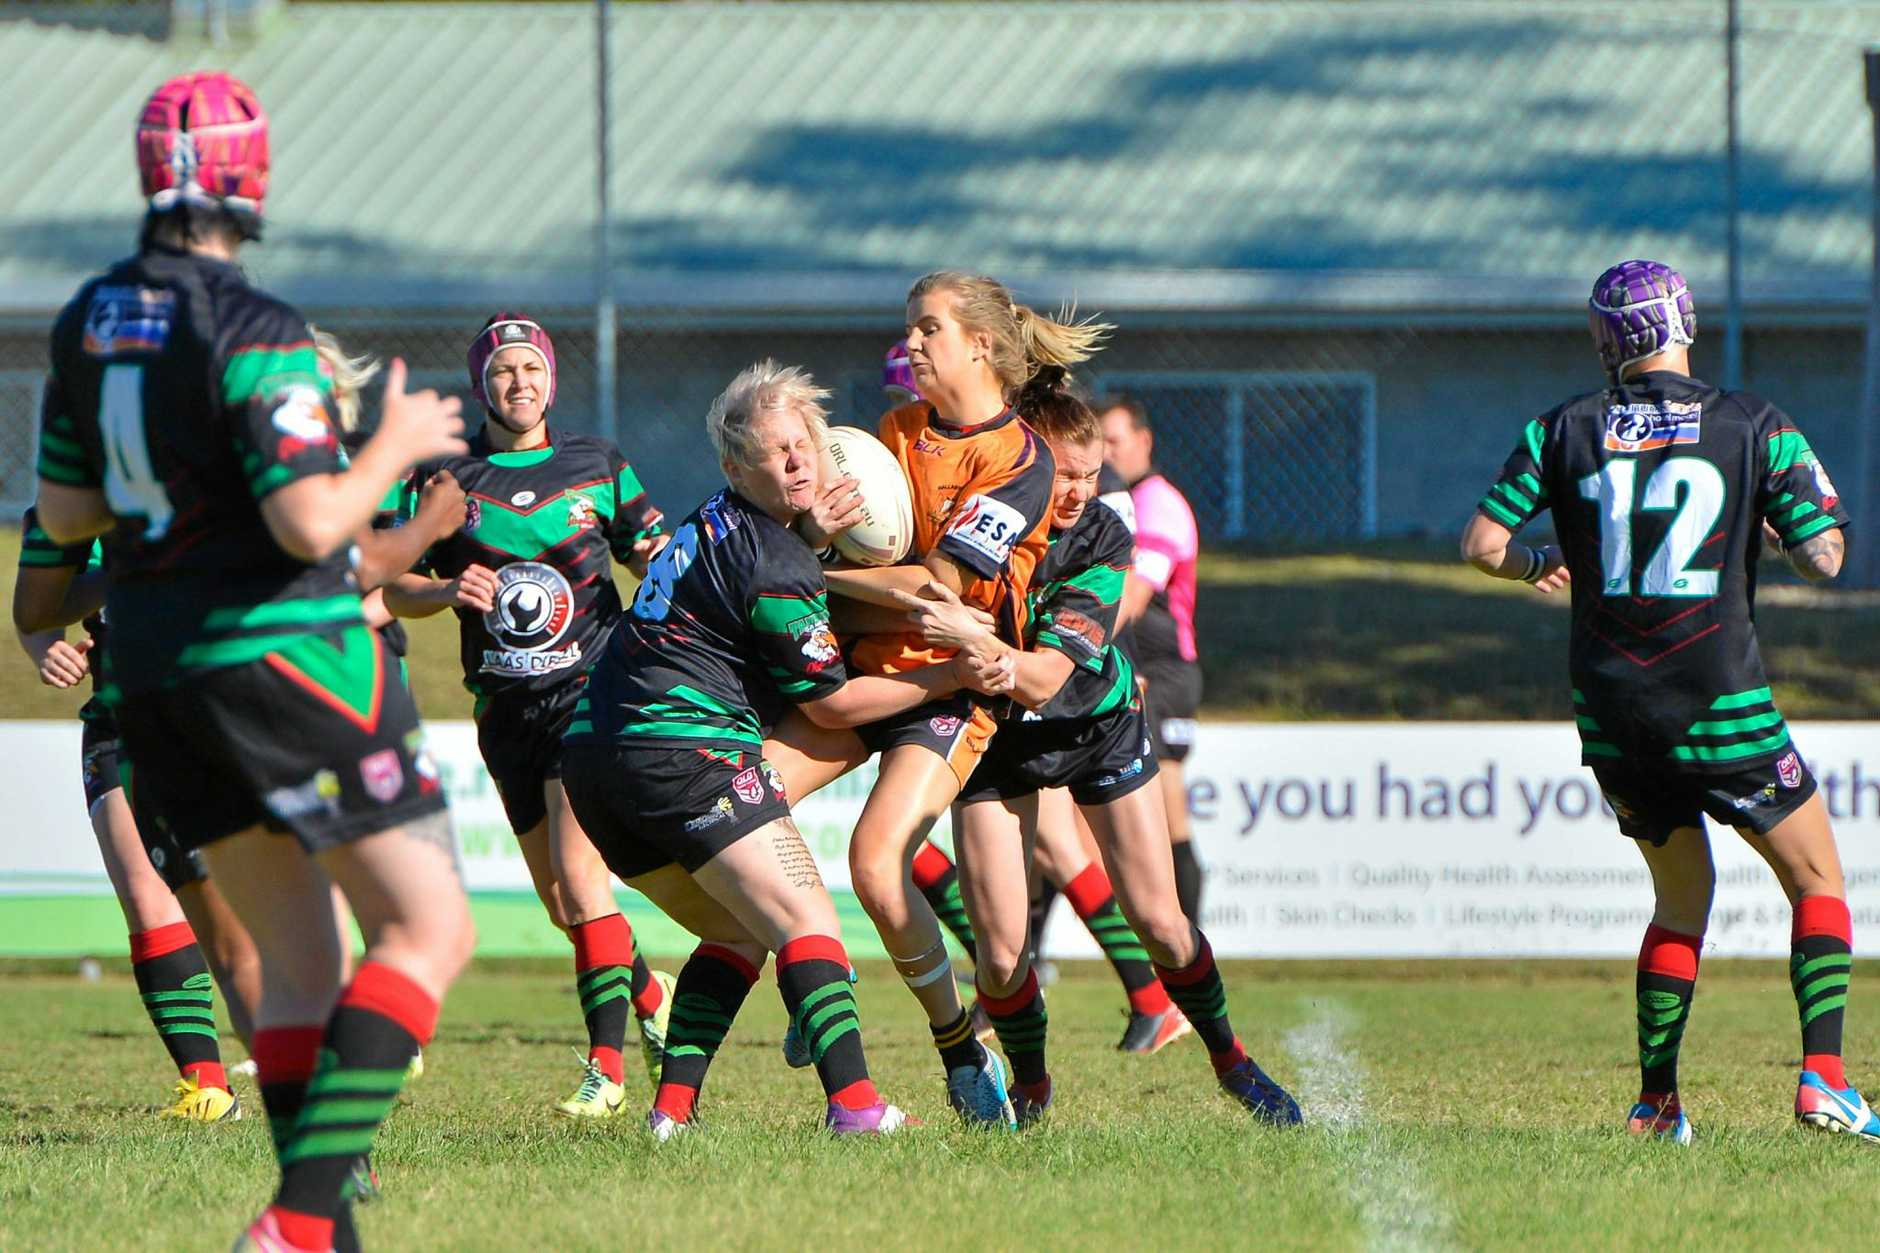 SHOWDOWN: Tannum Seagals' Nadine Day puts in a hard tackle in last year's preliminary final against Wallabys.